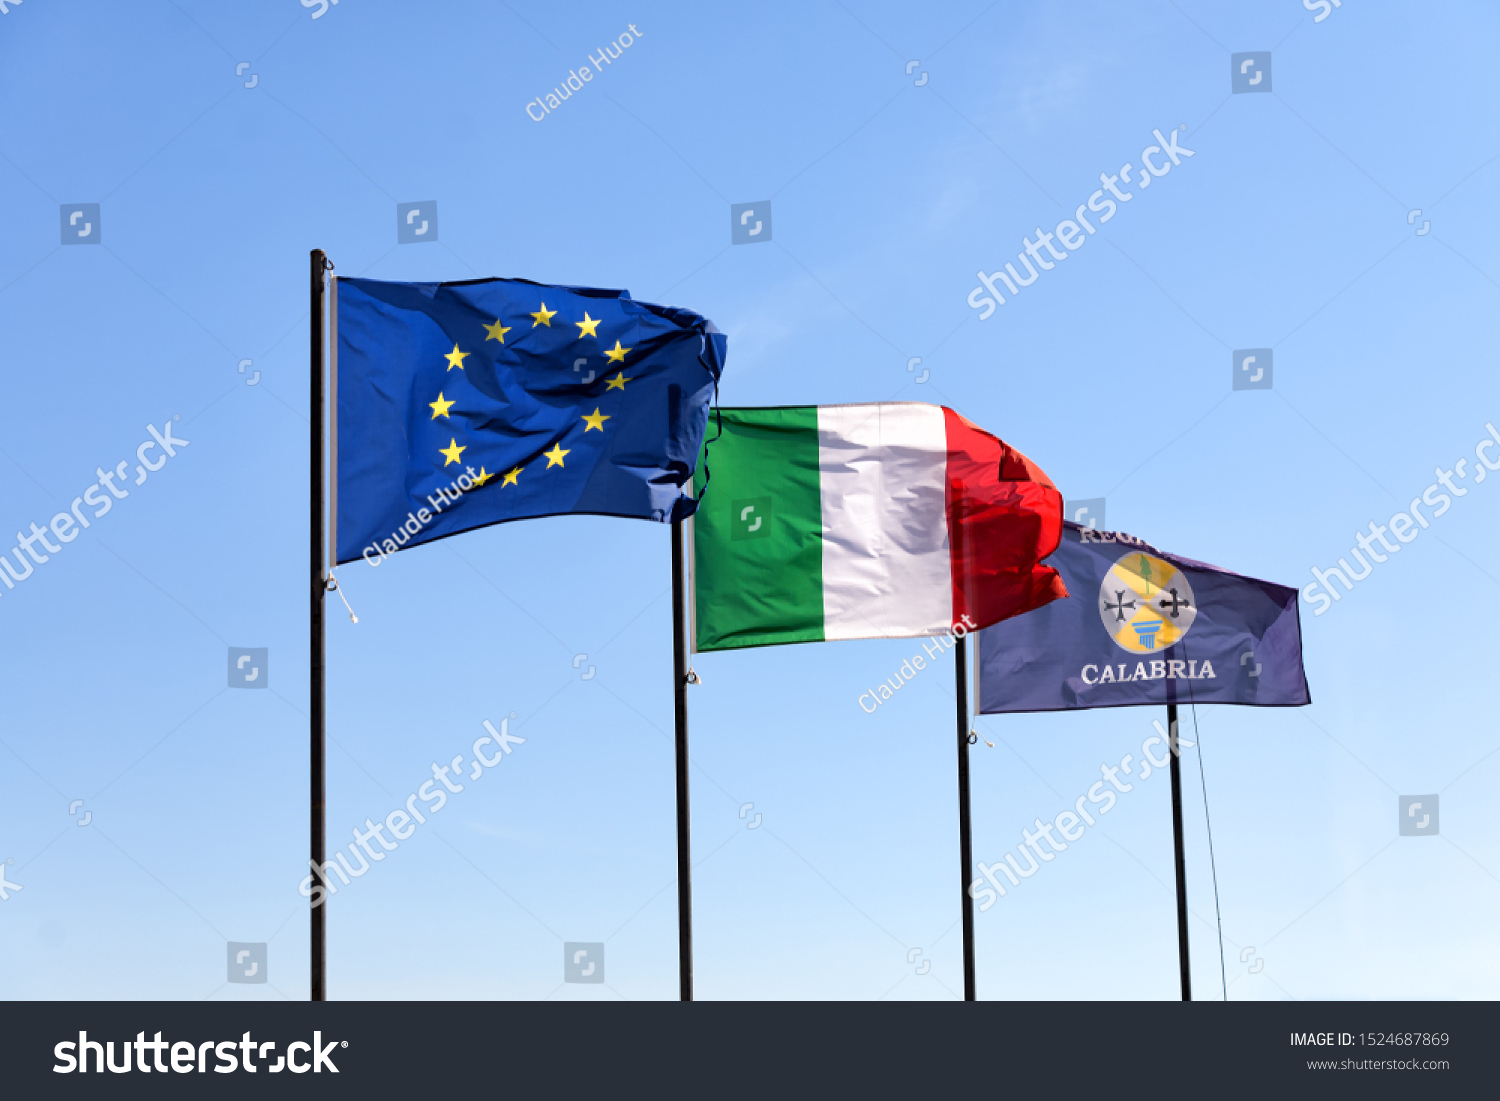 European Union, Italy and Calabria flags are flapping in the wind in the Calabrian region which is situated in the toe of the country's boot-shaped peninsula.